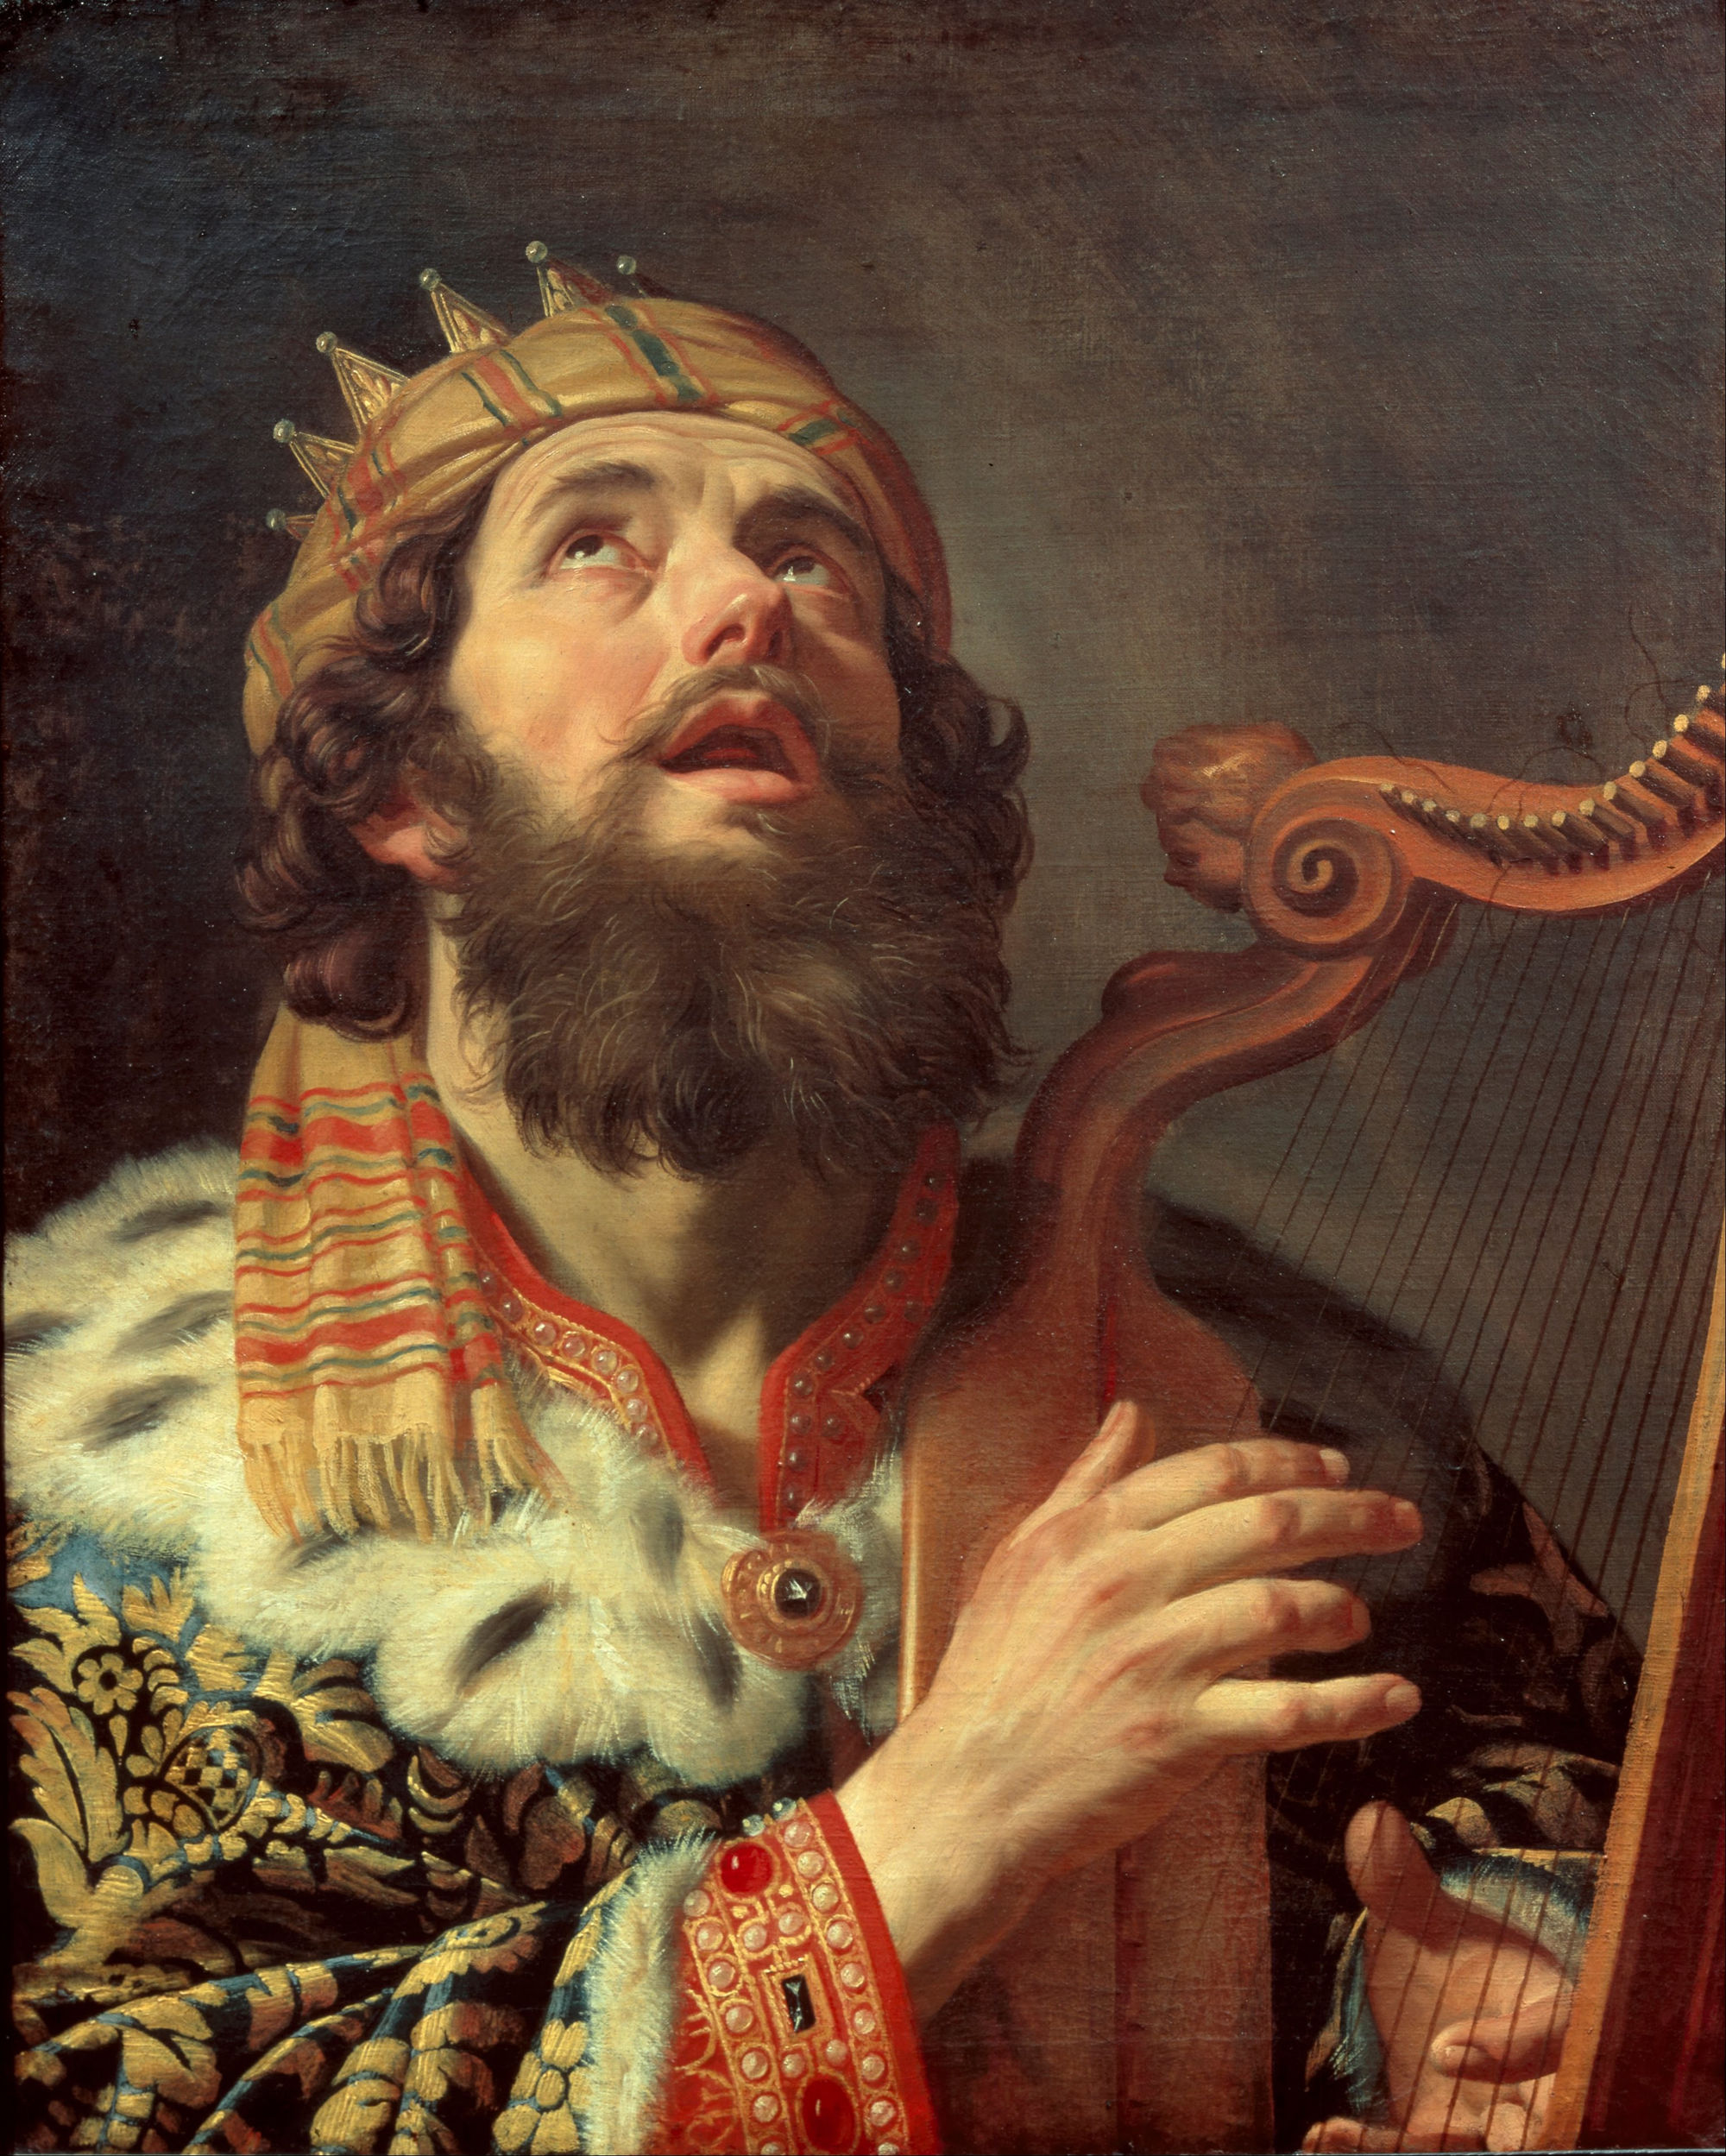 Gerard van Honthorst - King David Playing the Harp